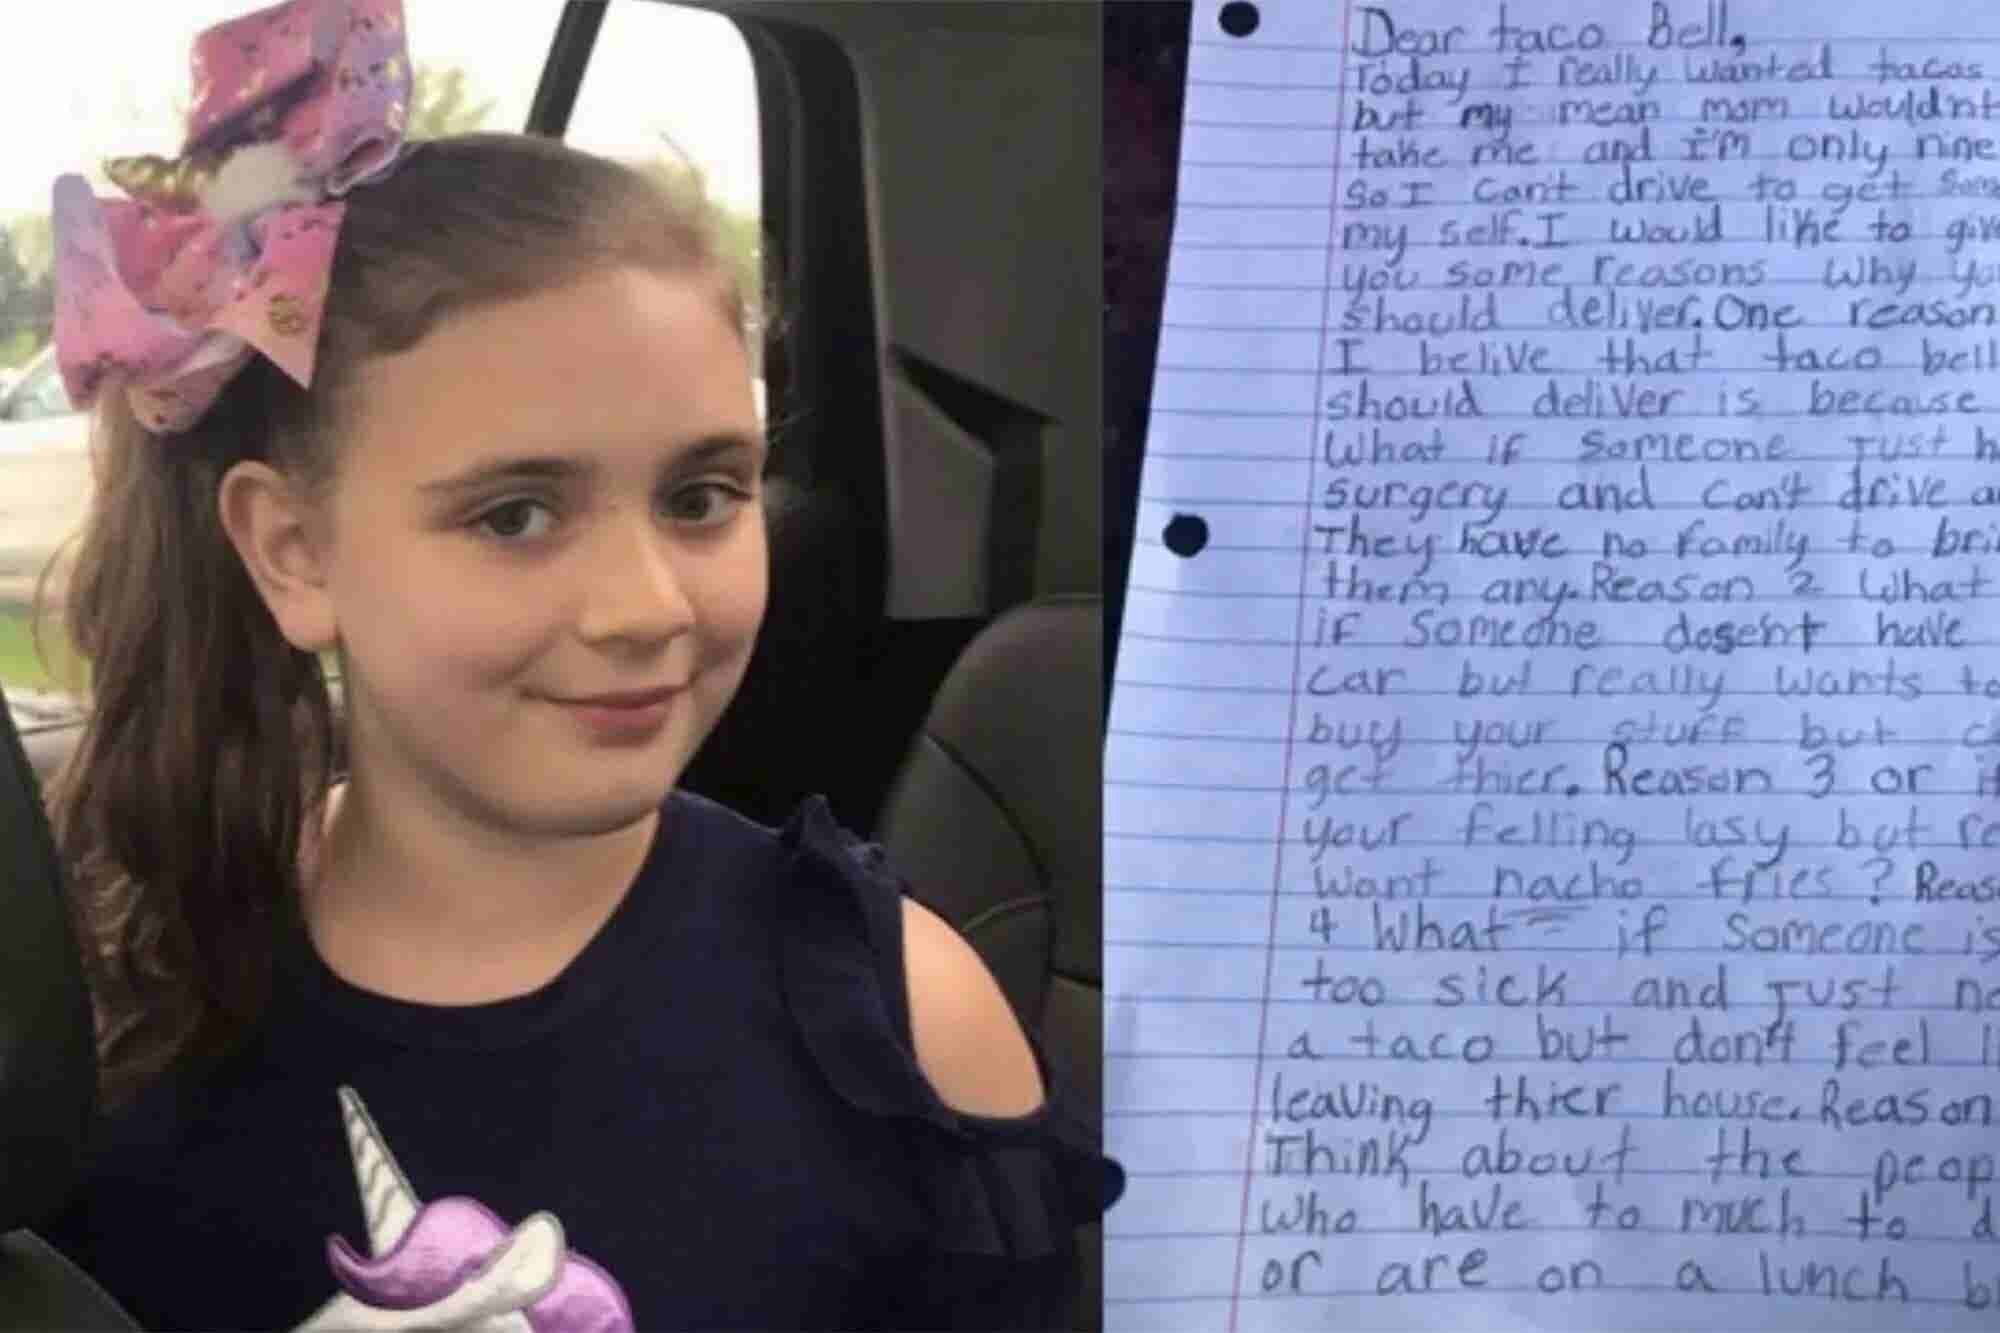 This 9-Year-Old Wrote to Taco Bell Asking Why They Don't Deliver. Now She is Going to Speak at Its Annual Convention.